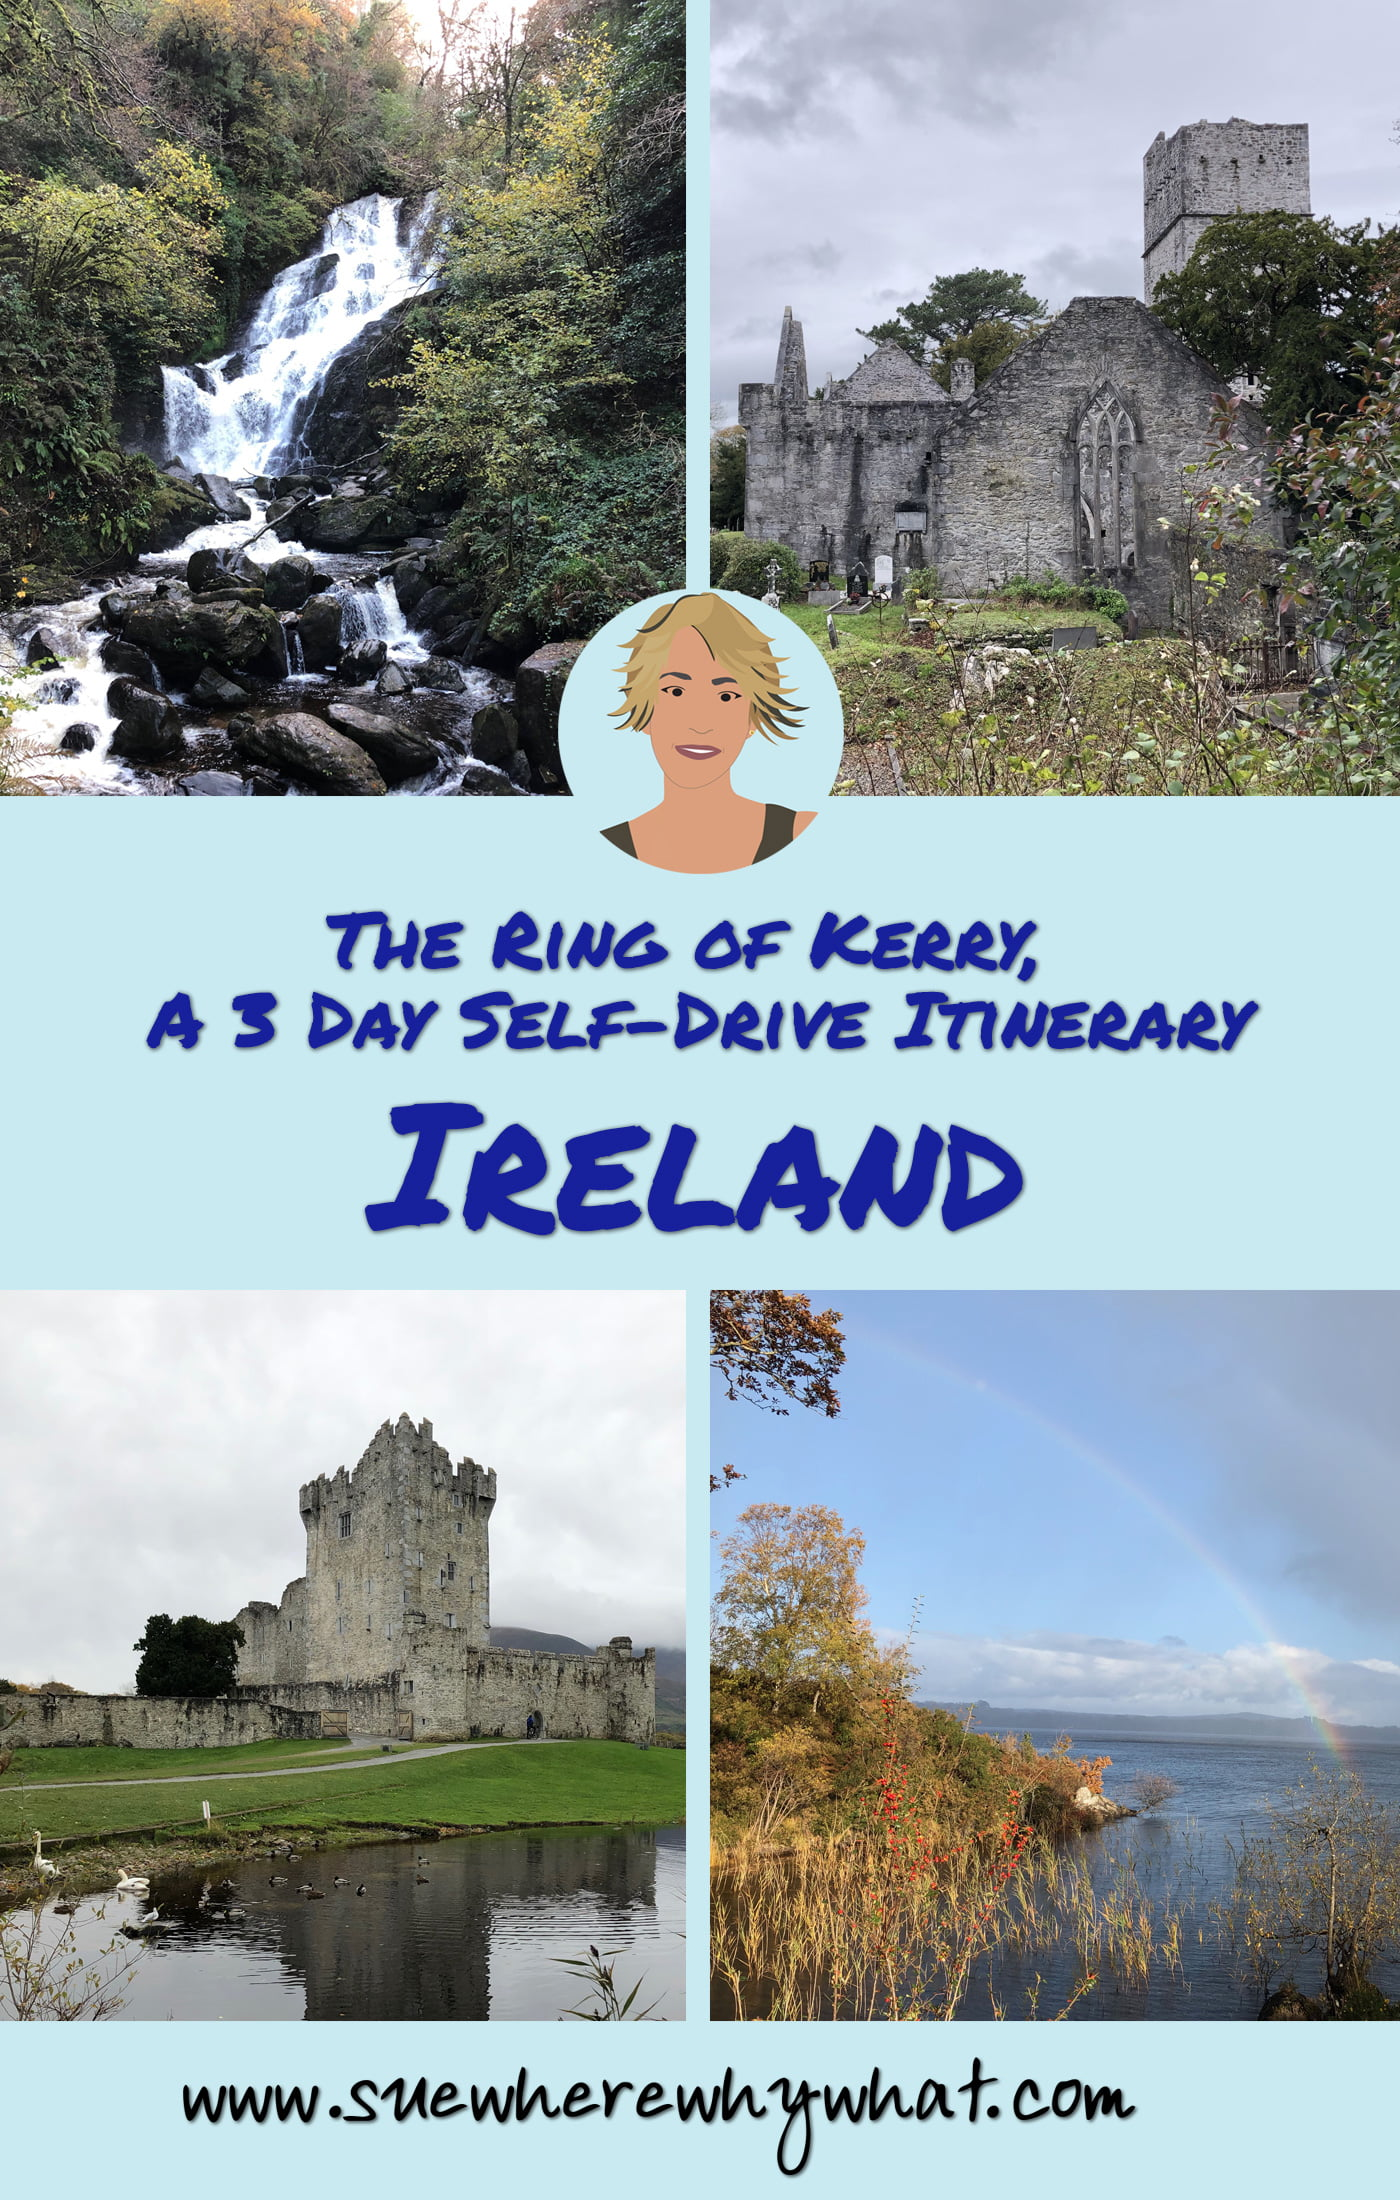 The perfect itinerary for a 3 day road trip of the Ring of Kerry on the Wild Atlantic Way in Ireland. The itinerary includes Killarney National Park, Valentia Island, Skellig Islands, Portmagee, Ballinskelligs, Derrynane, Kenmare, Ross Castle, Muckross House, stone forts, rainbows, castles, abbeys, cliffs & some of the most spectacular scenery anywhere in the world. In addition, there are loads of recommendations for where to sample the best 'craic' & Irish hospitality along the way!